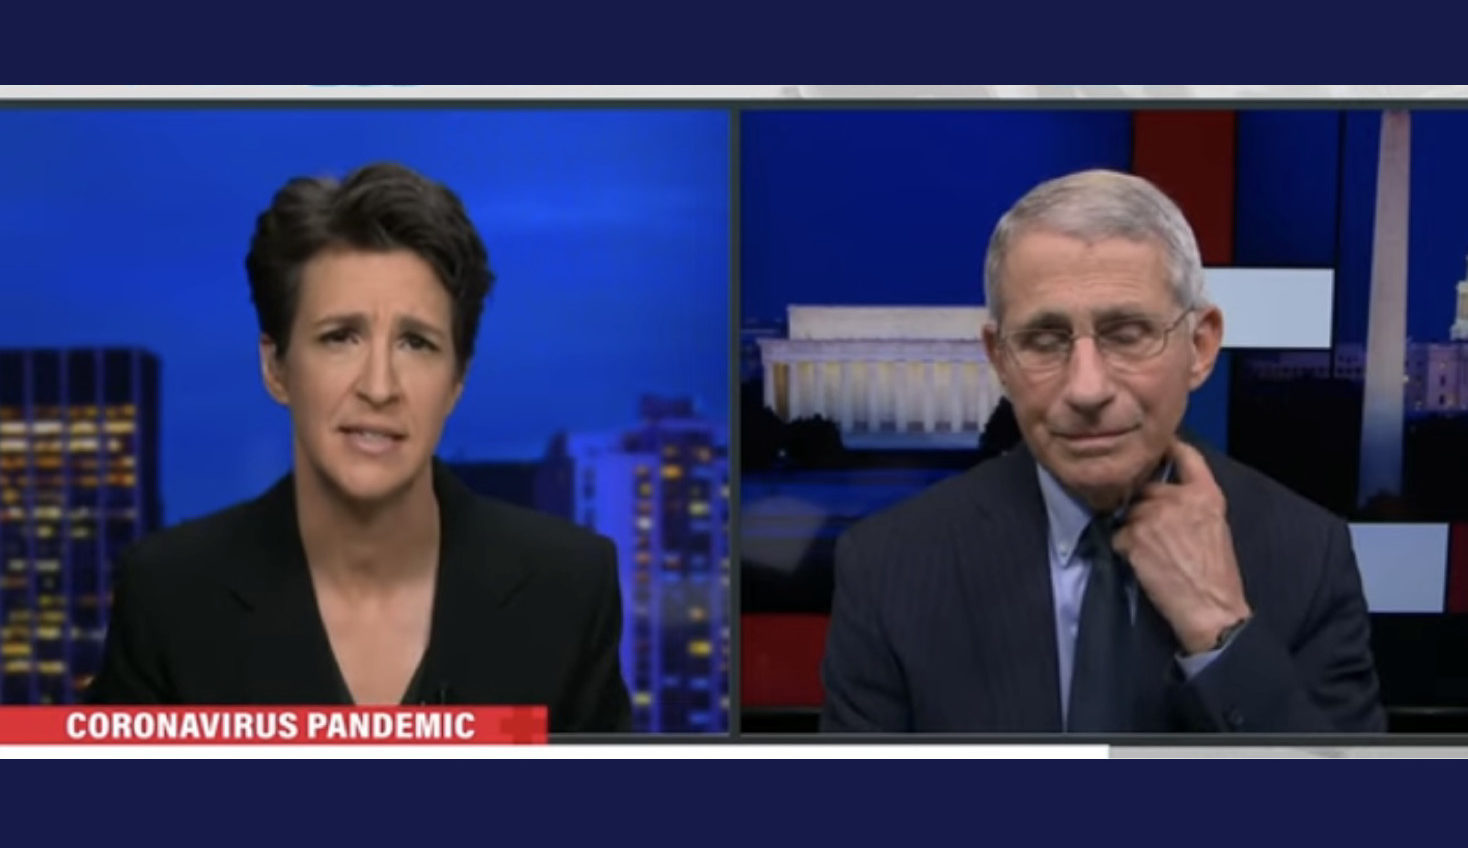 Rachel Maddow (left) and Dr. Anthony Fauci (right) on the Rachel Maddow Show